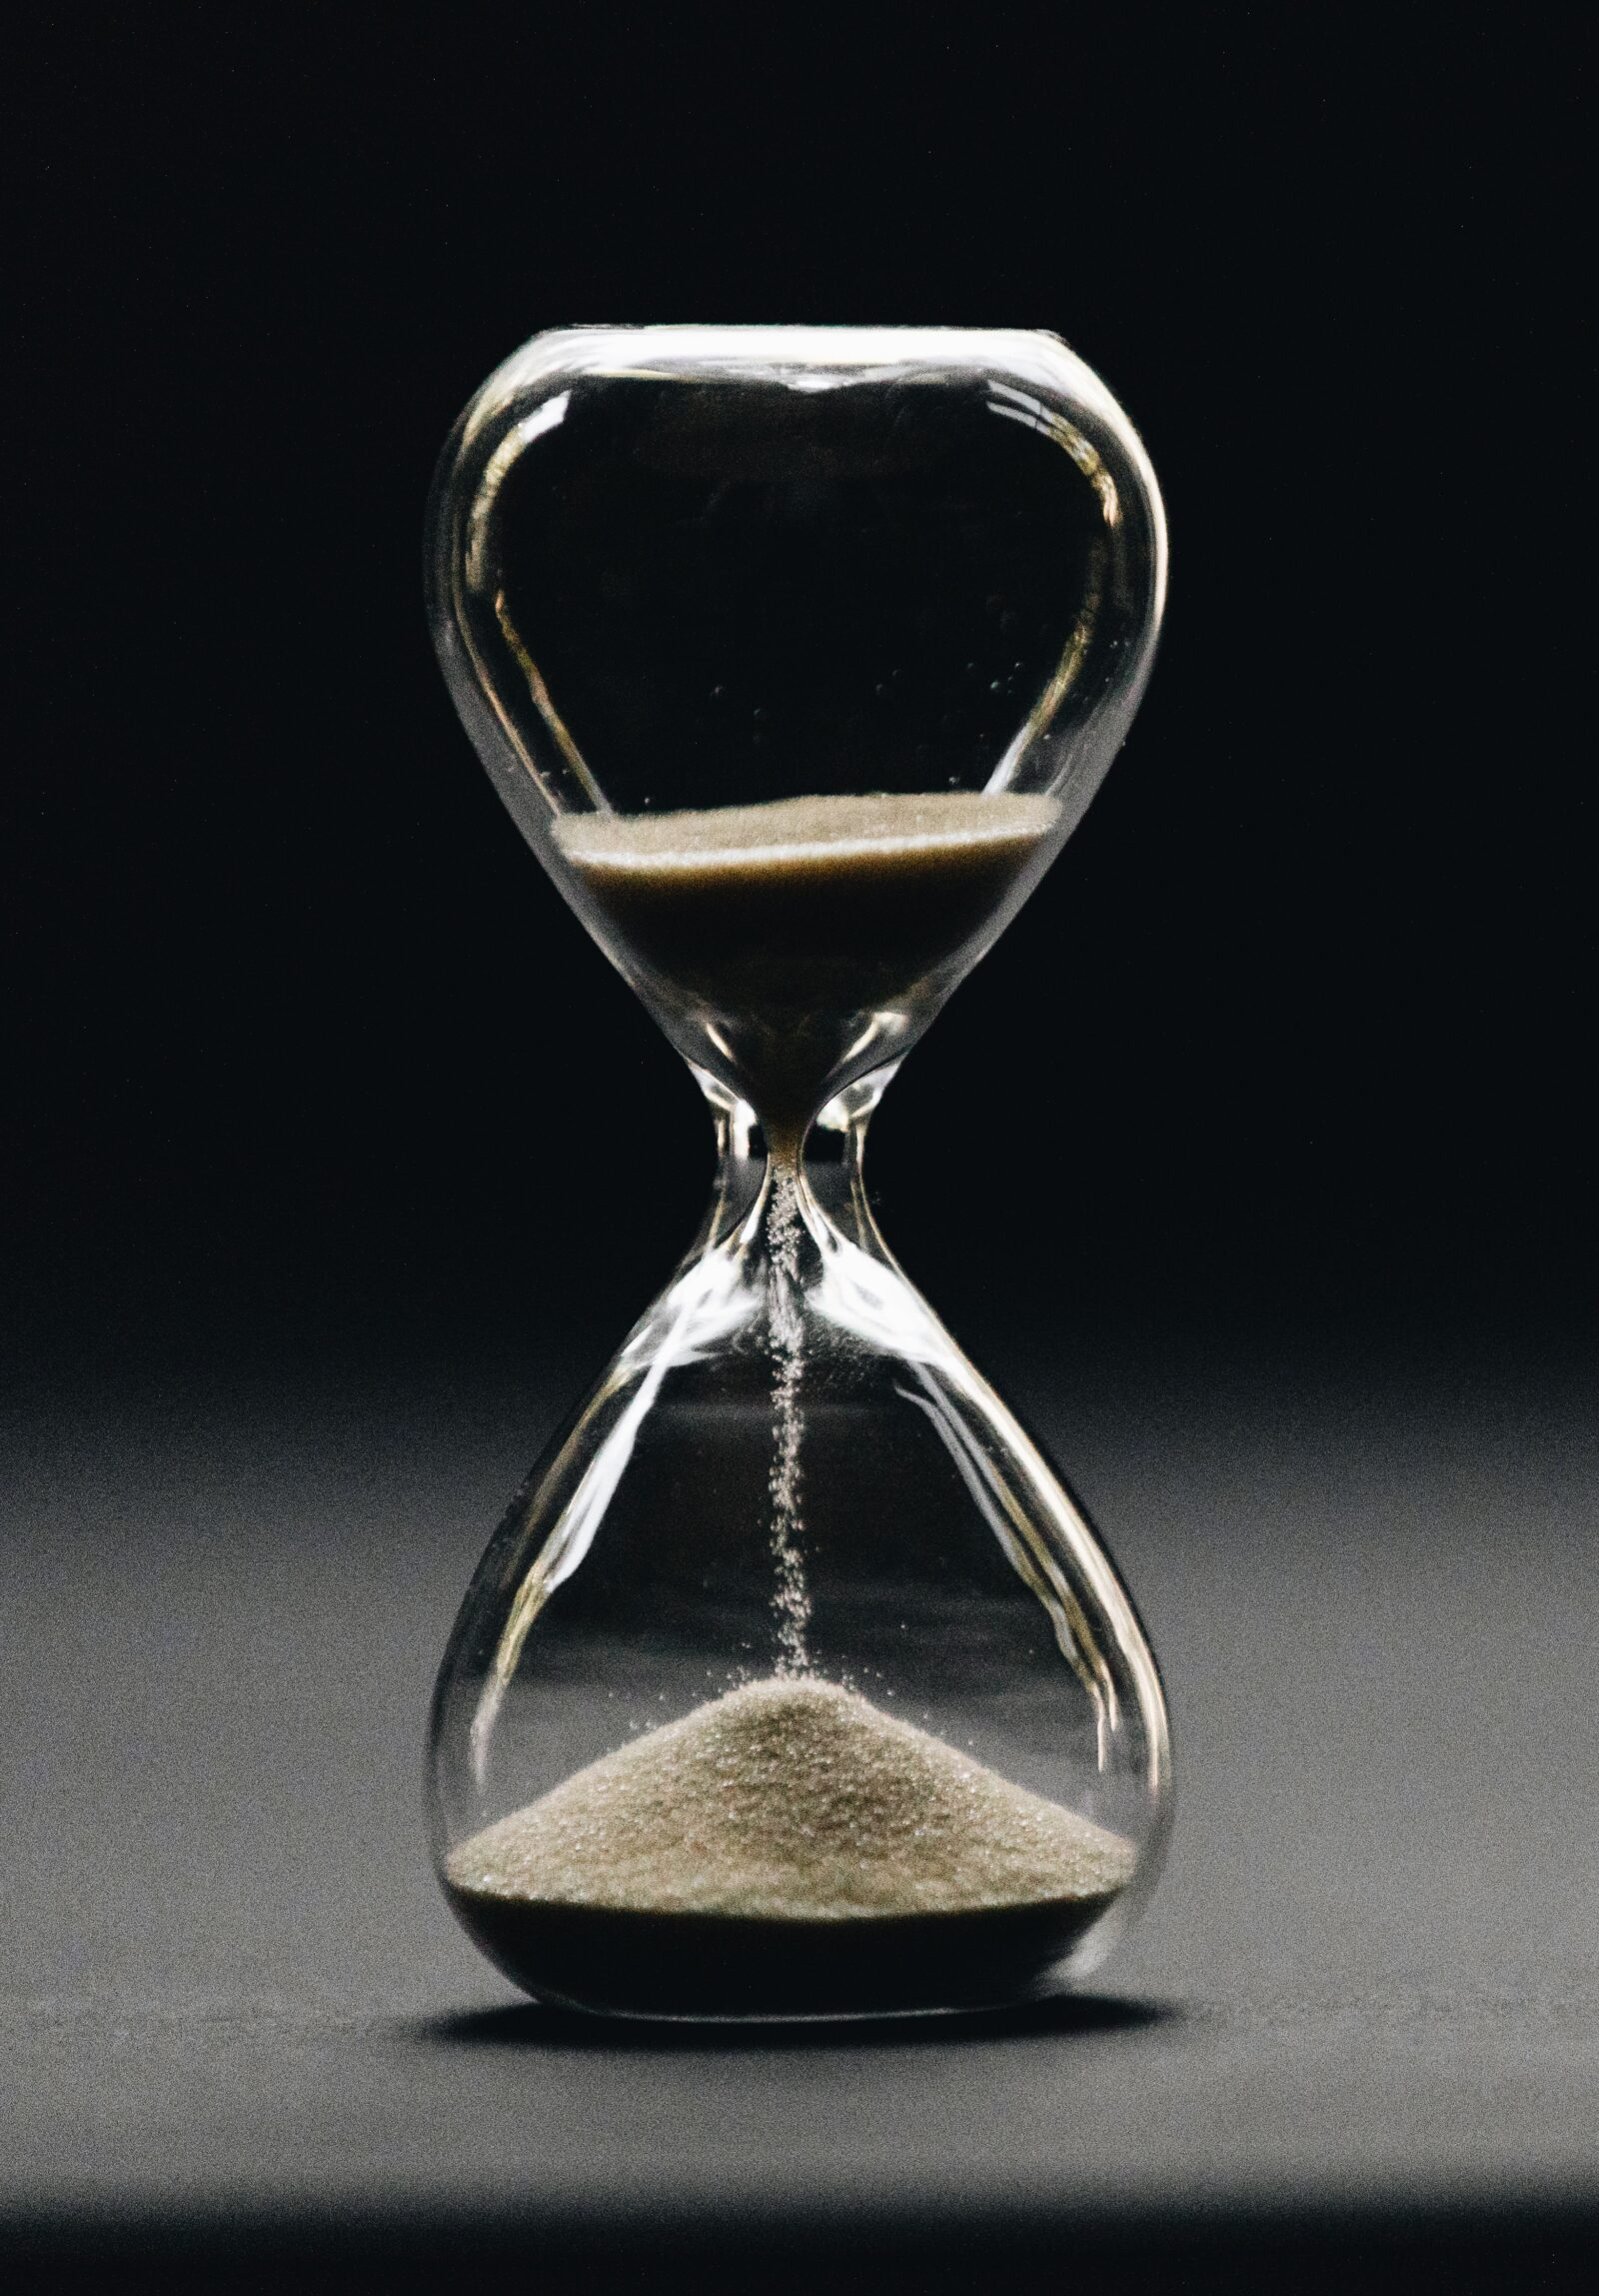 Time is ticking - hourglass